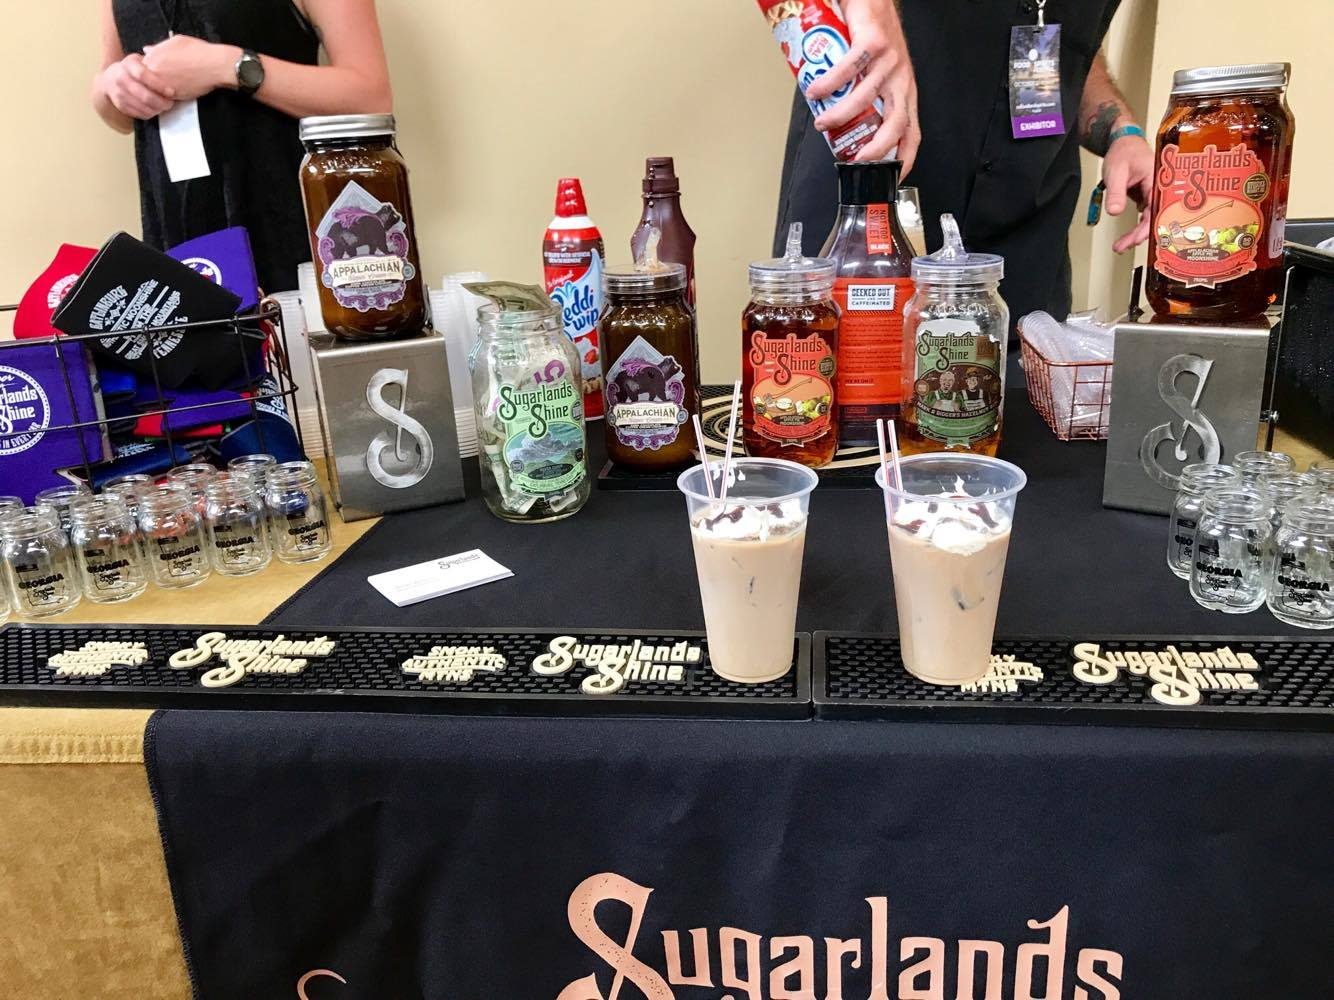 Spiritual Brunch - Delicious Spiked Coffee Drinks from Sugarlands - St Simons Island Food Spirits Festival